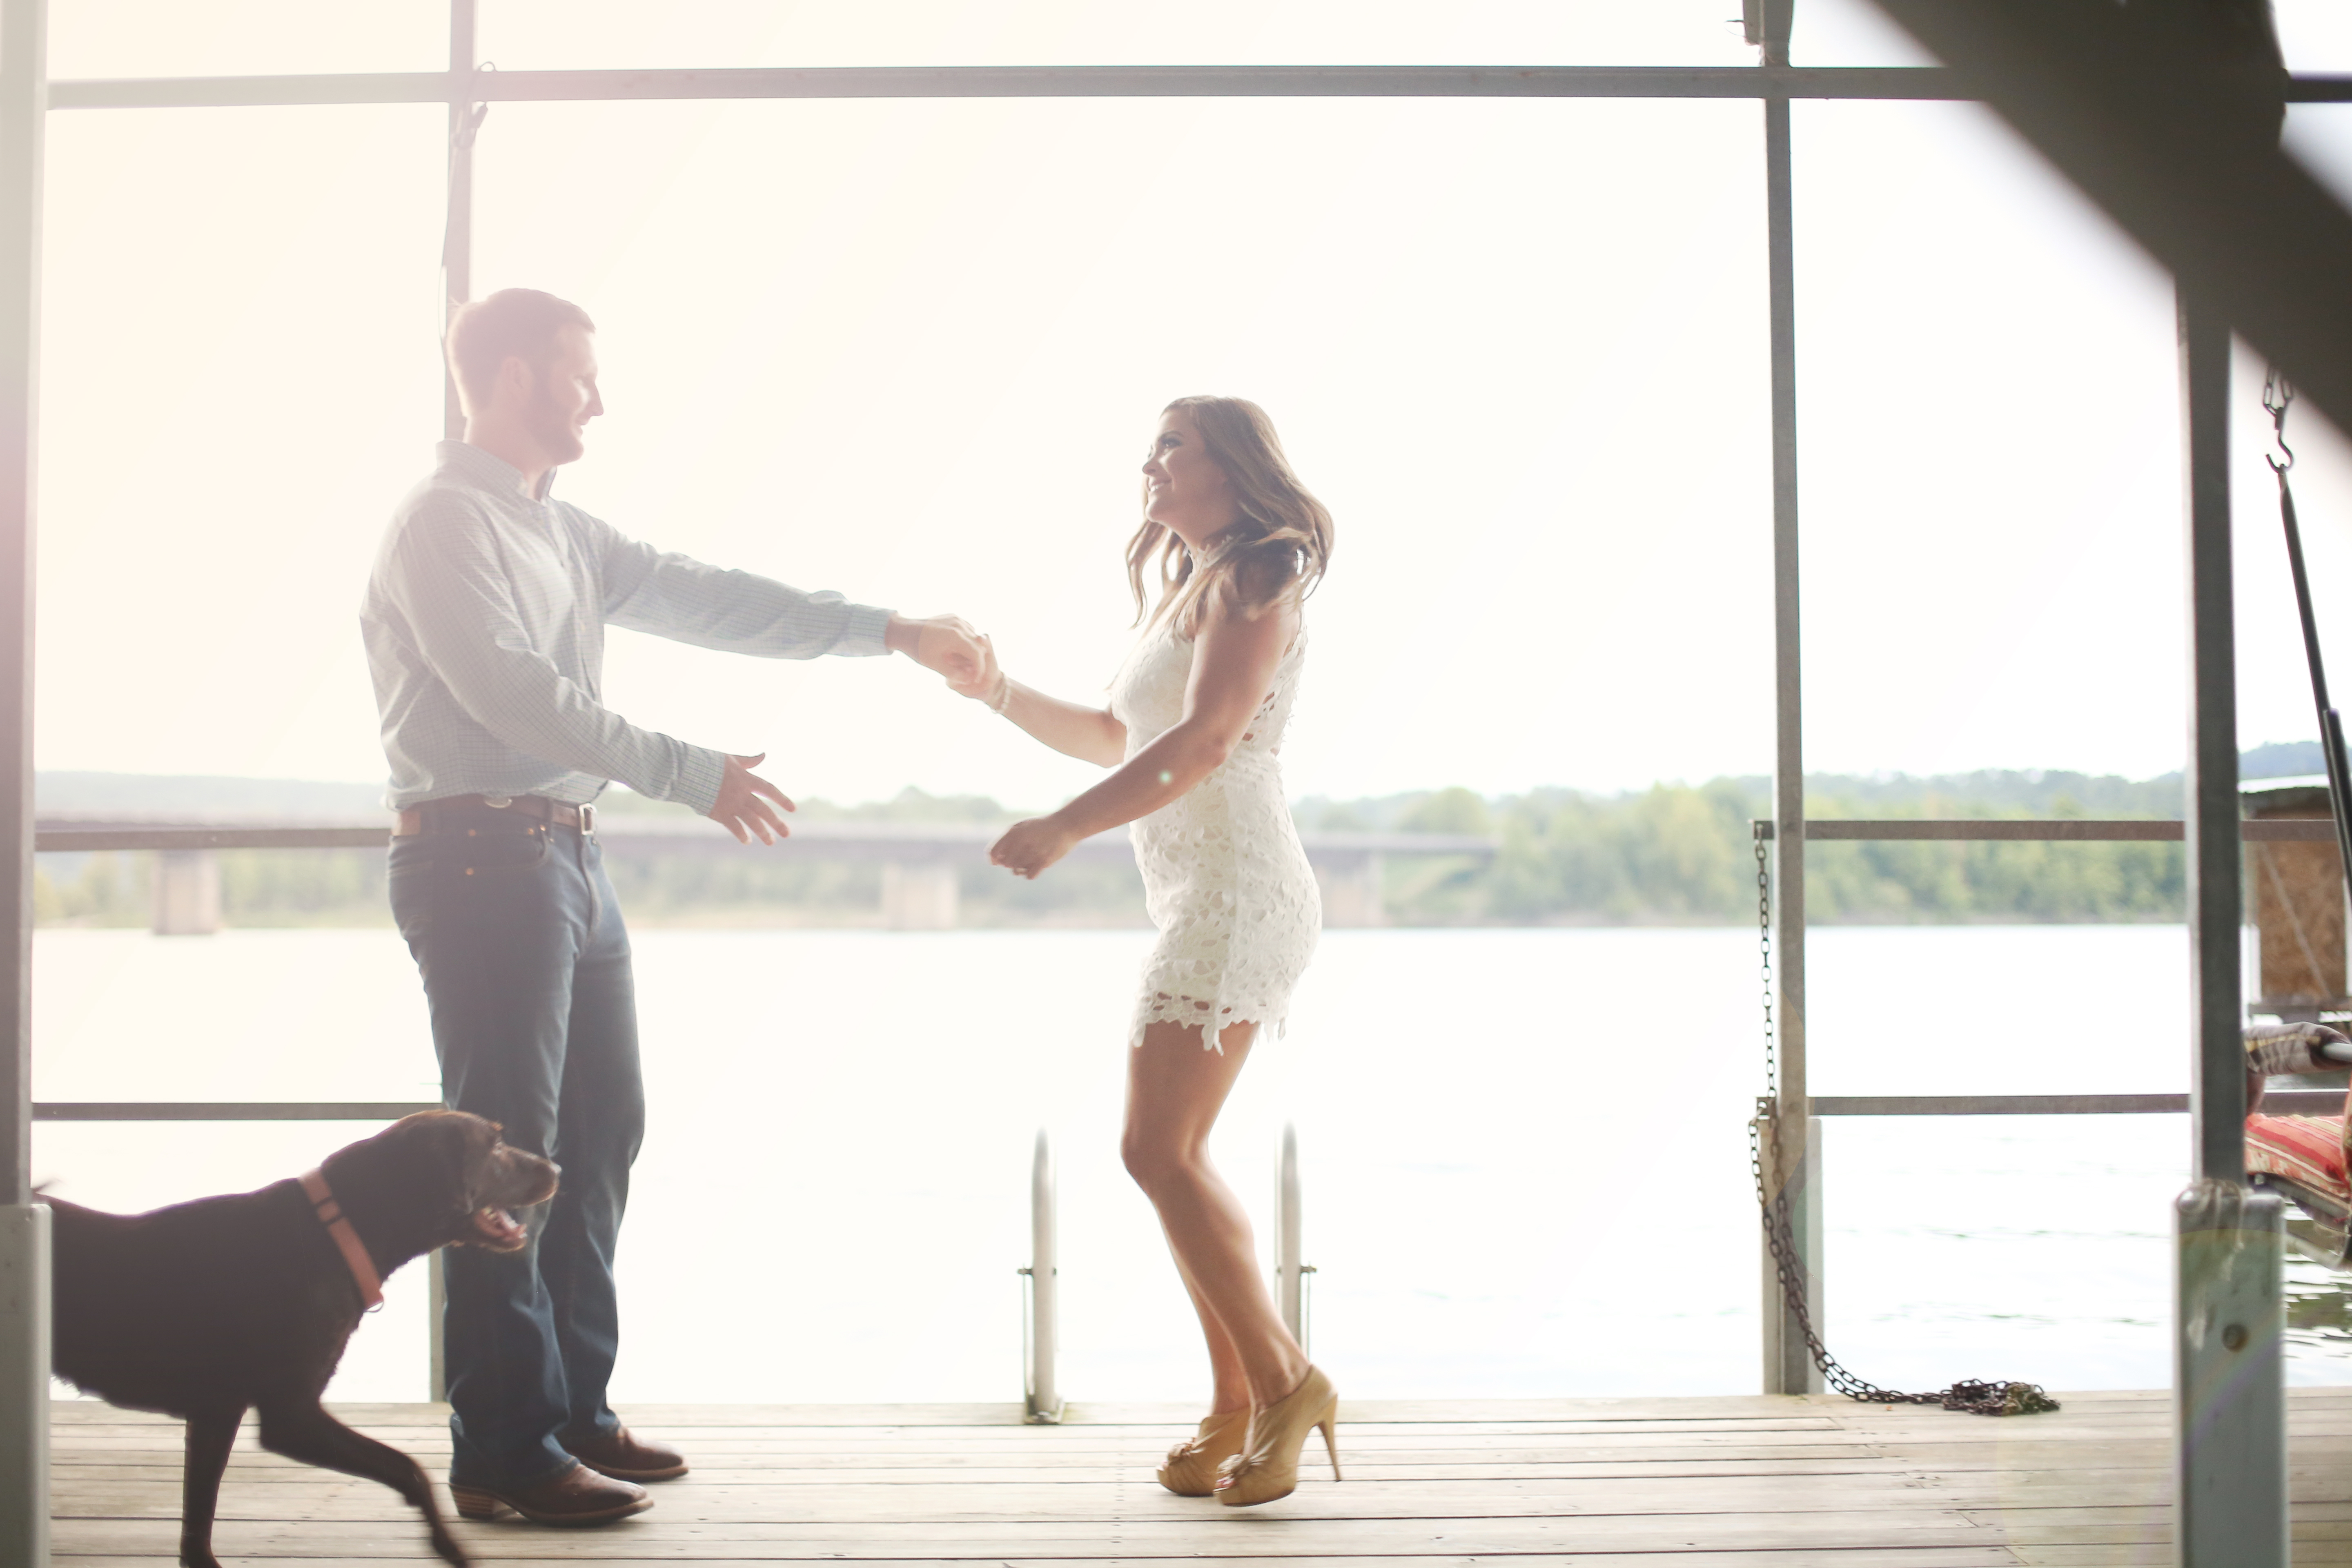 Engagement photo spinning and dancing on the dock dogs engagement shoot